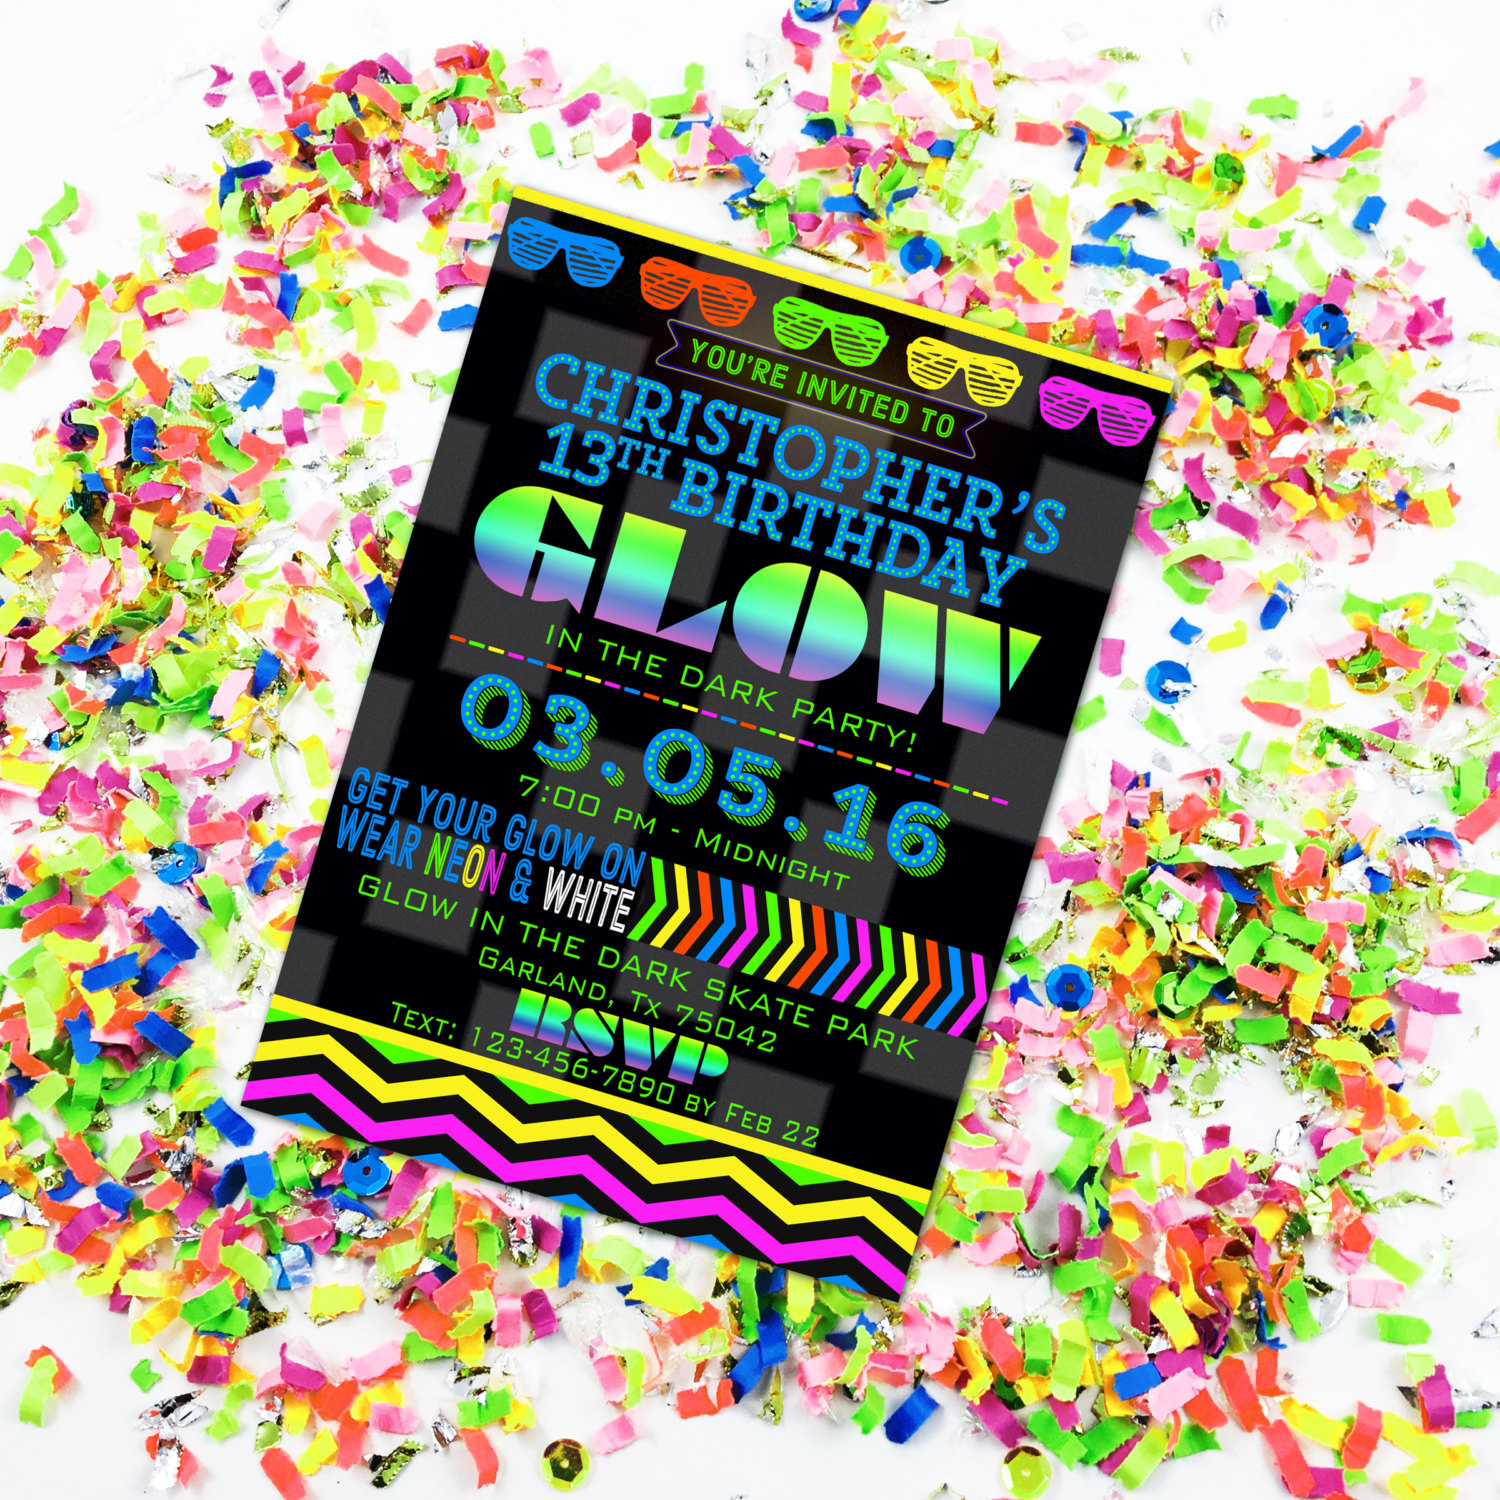 Glow In The Dark Party Invitation Glow Birthday Neon Party   Etsy - Free Printable Glow In The Dark Birthday Party Invitations